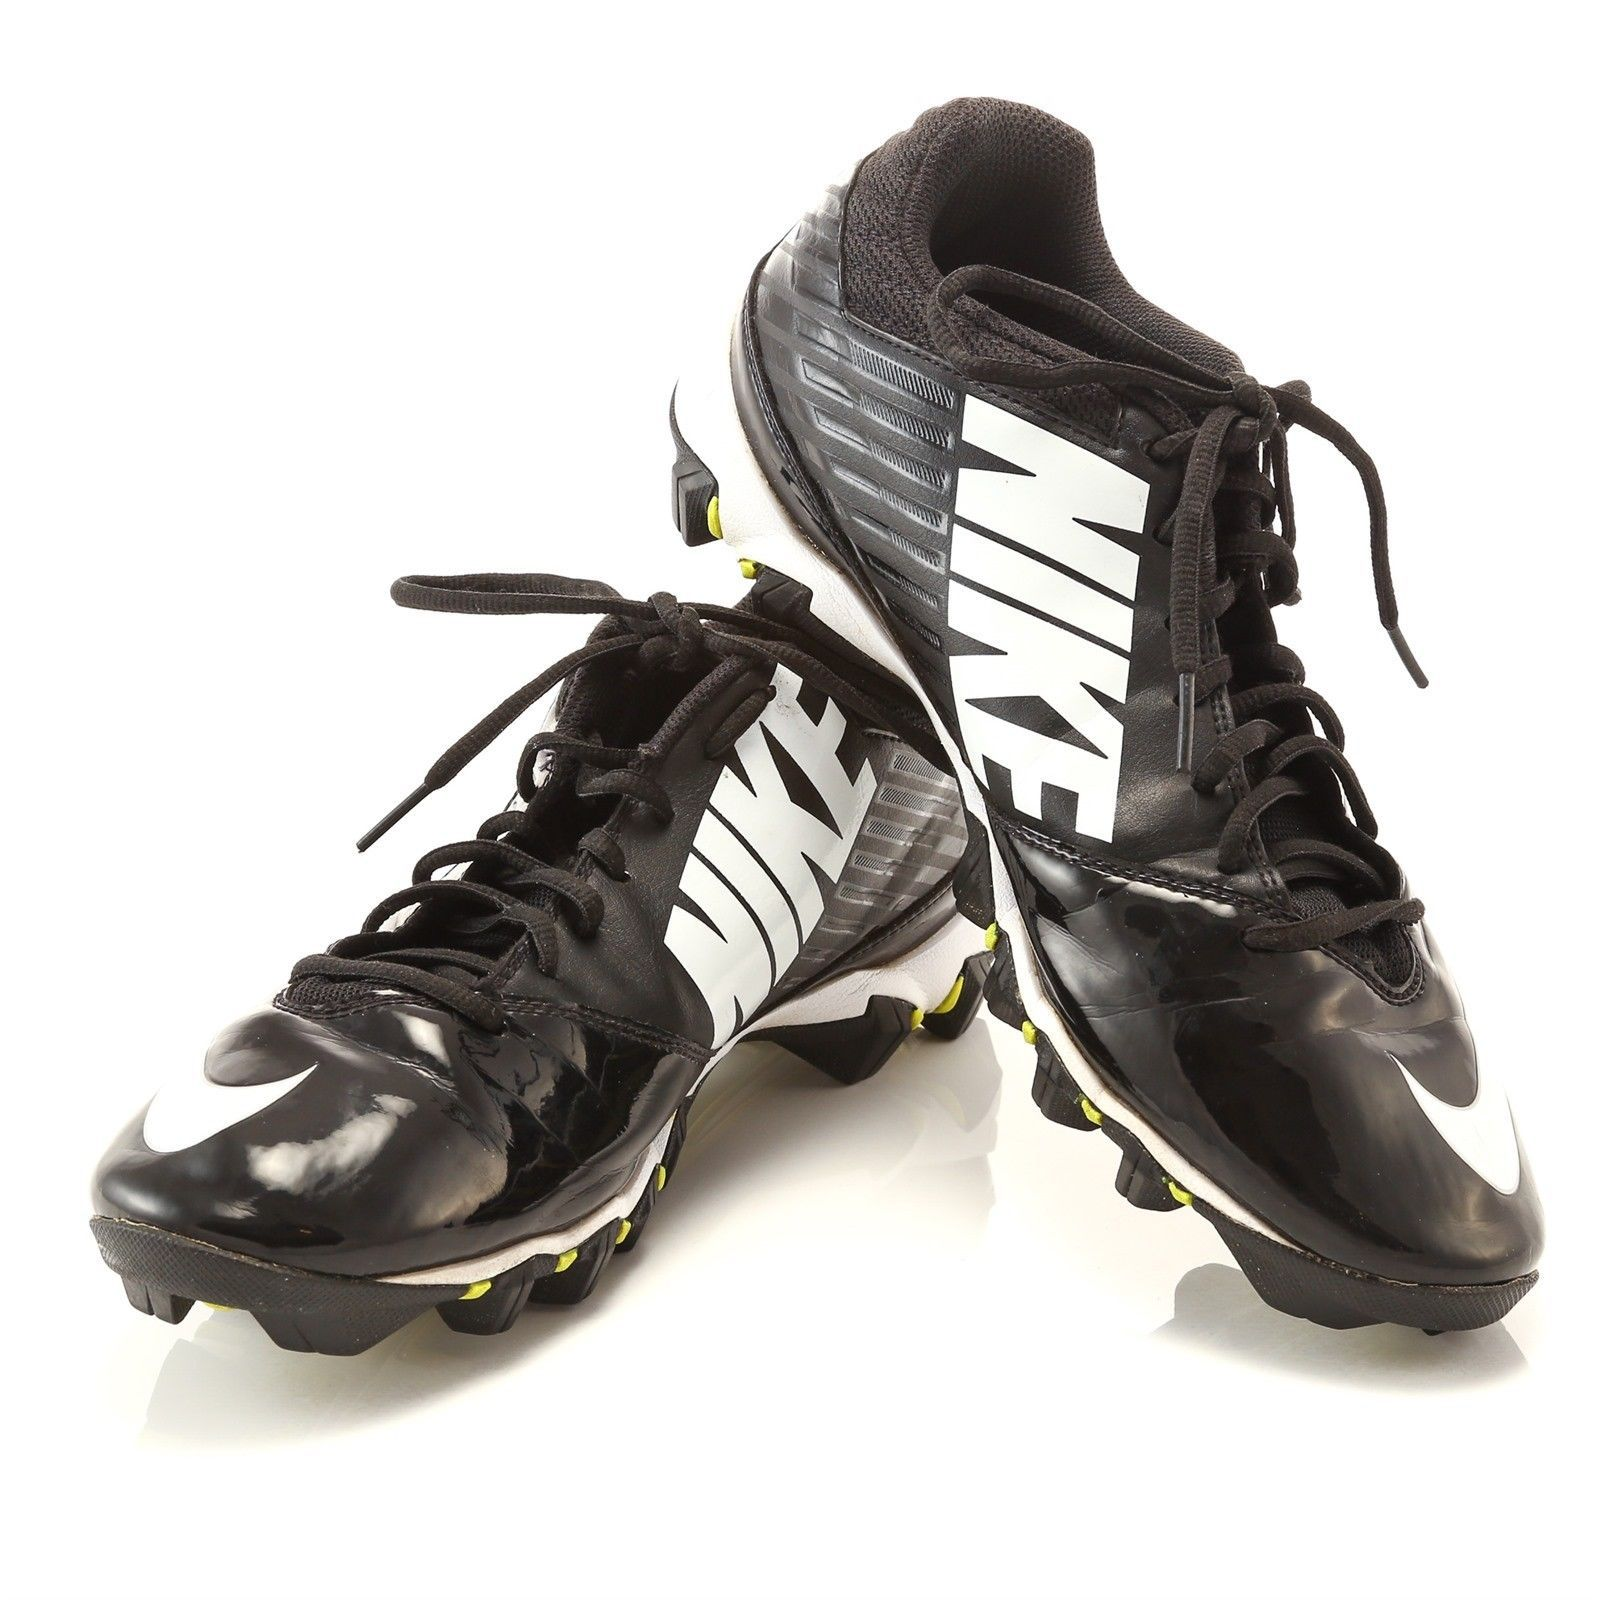 a329e04d9 Nike Vapor Shark Black White Football Cleats and 50 similar items. 57